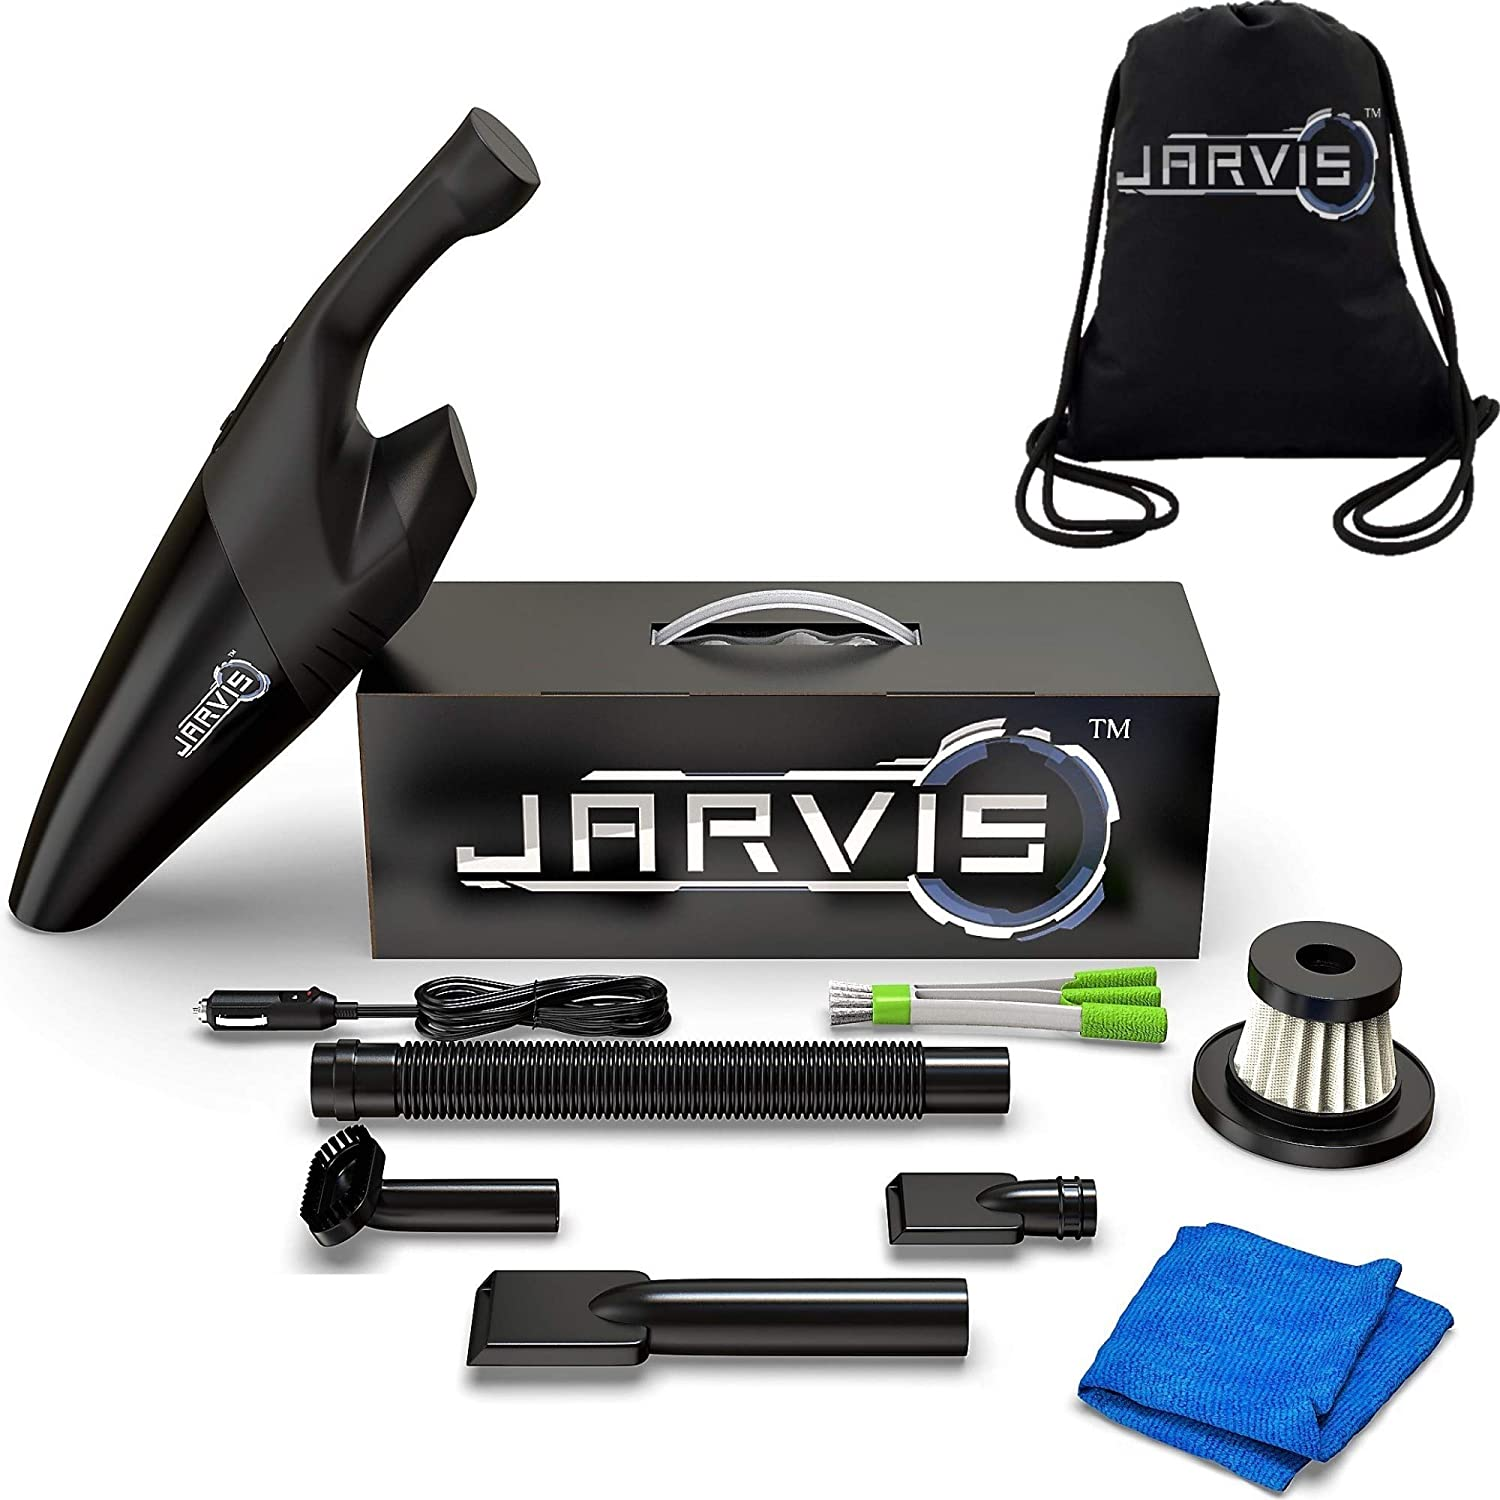 Selling rankings Recommendation JARVIS Car Vacuum Cleaner High Portable Power Cleaning Interior